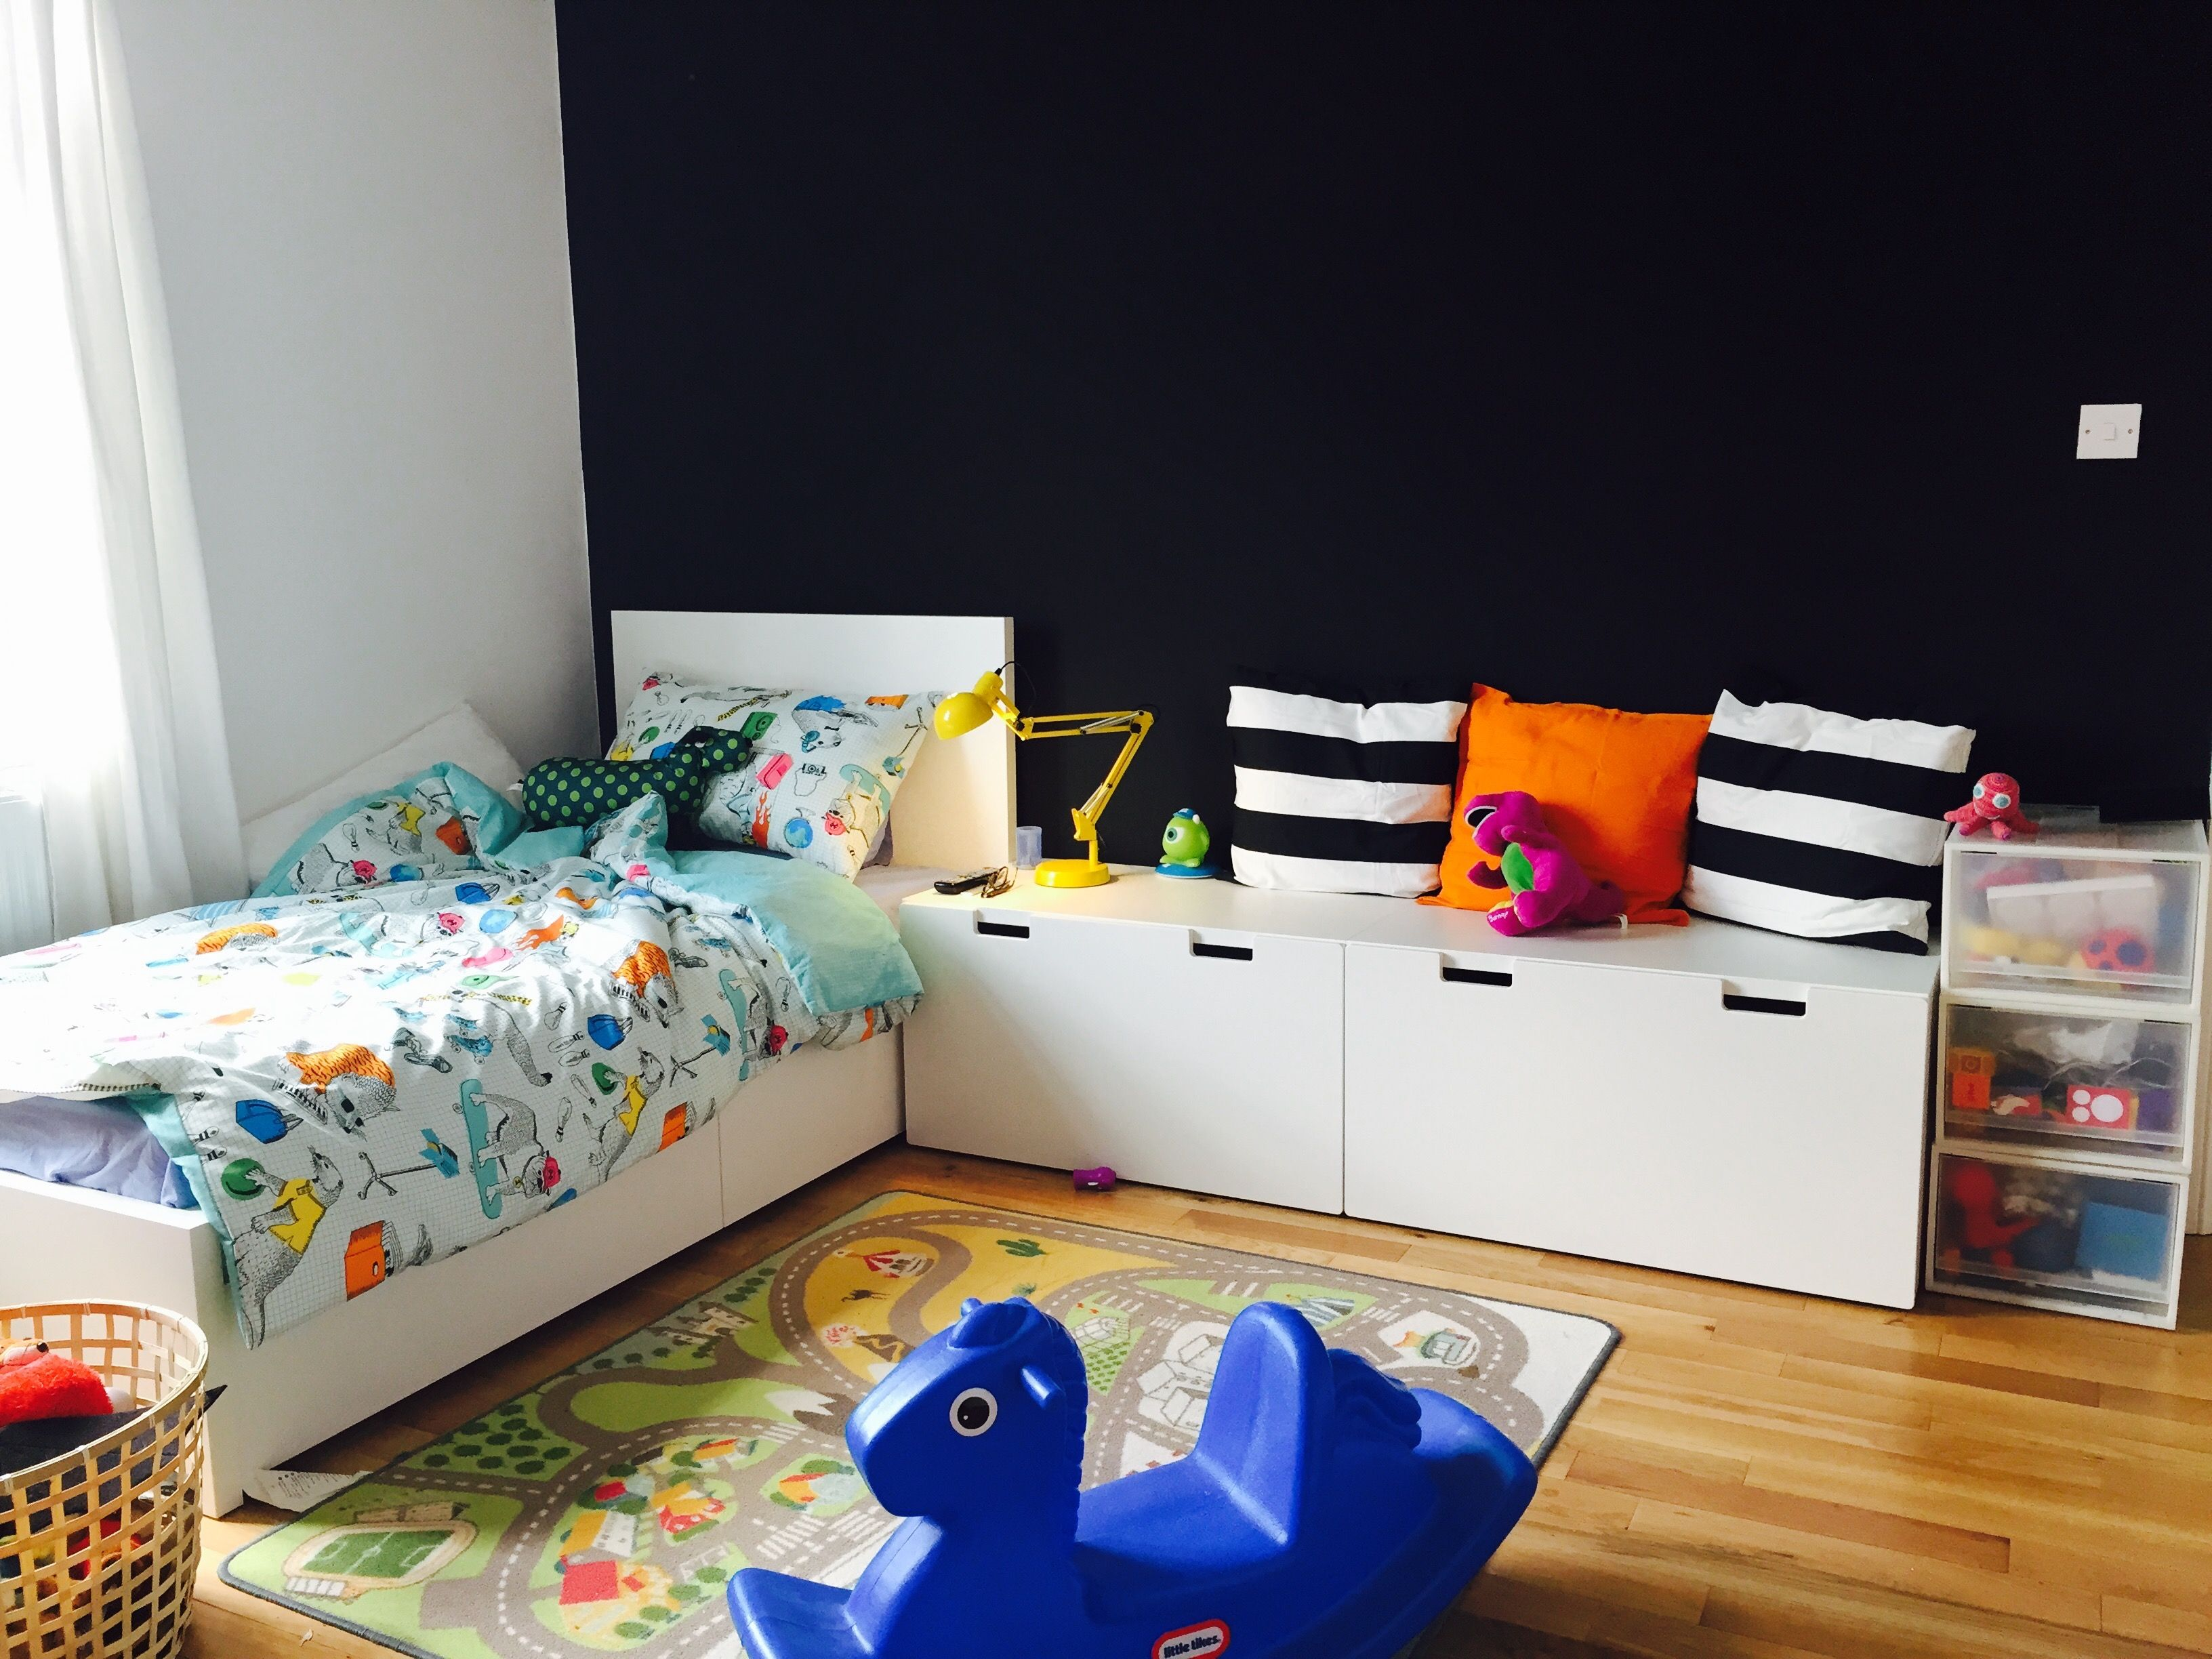 Children 39 s room ikea malm bed with stuva storage benches b de beb s e crian as pinterest - Kids room ideas ikea ...